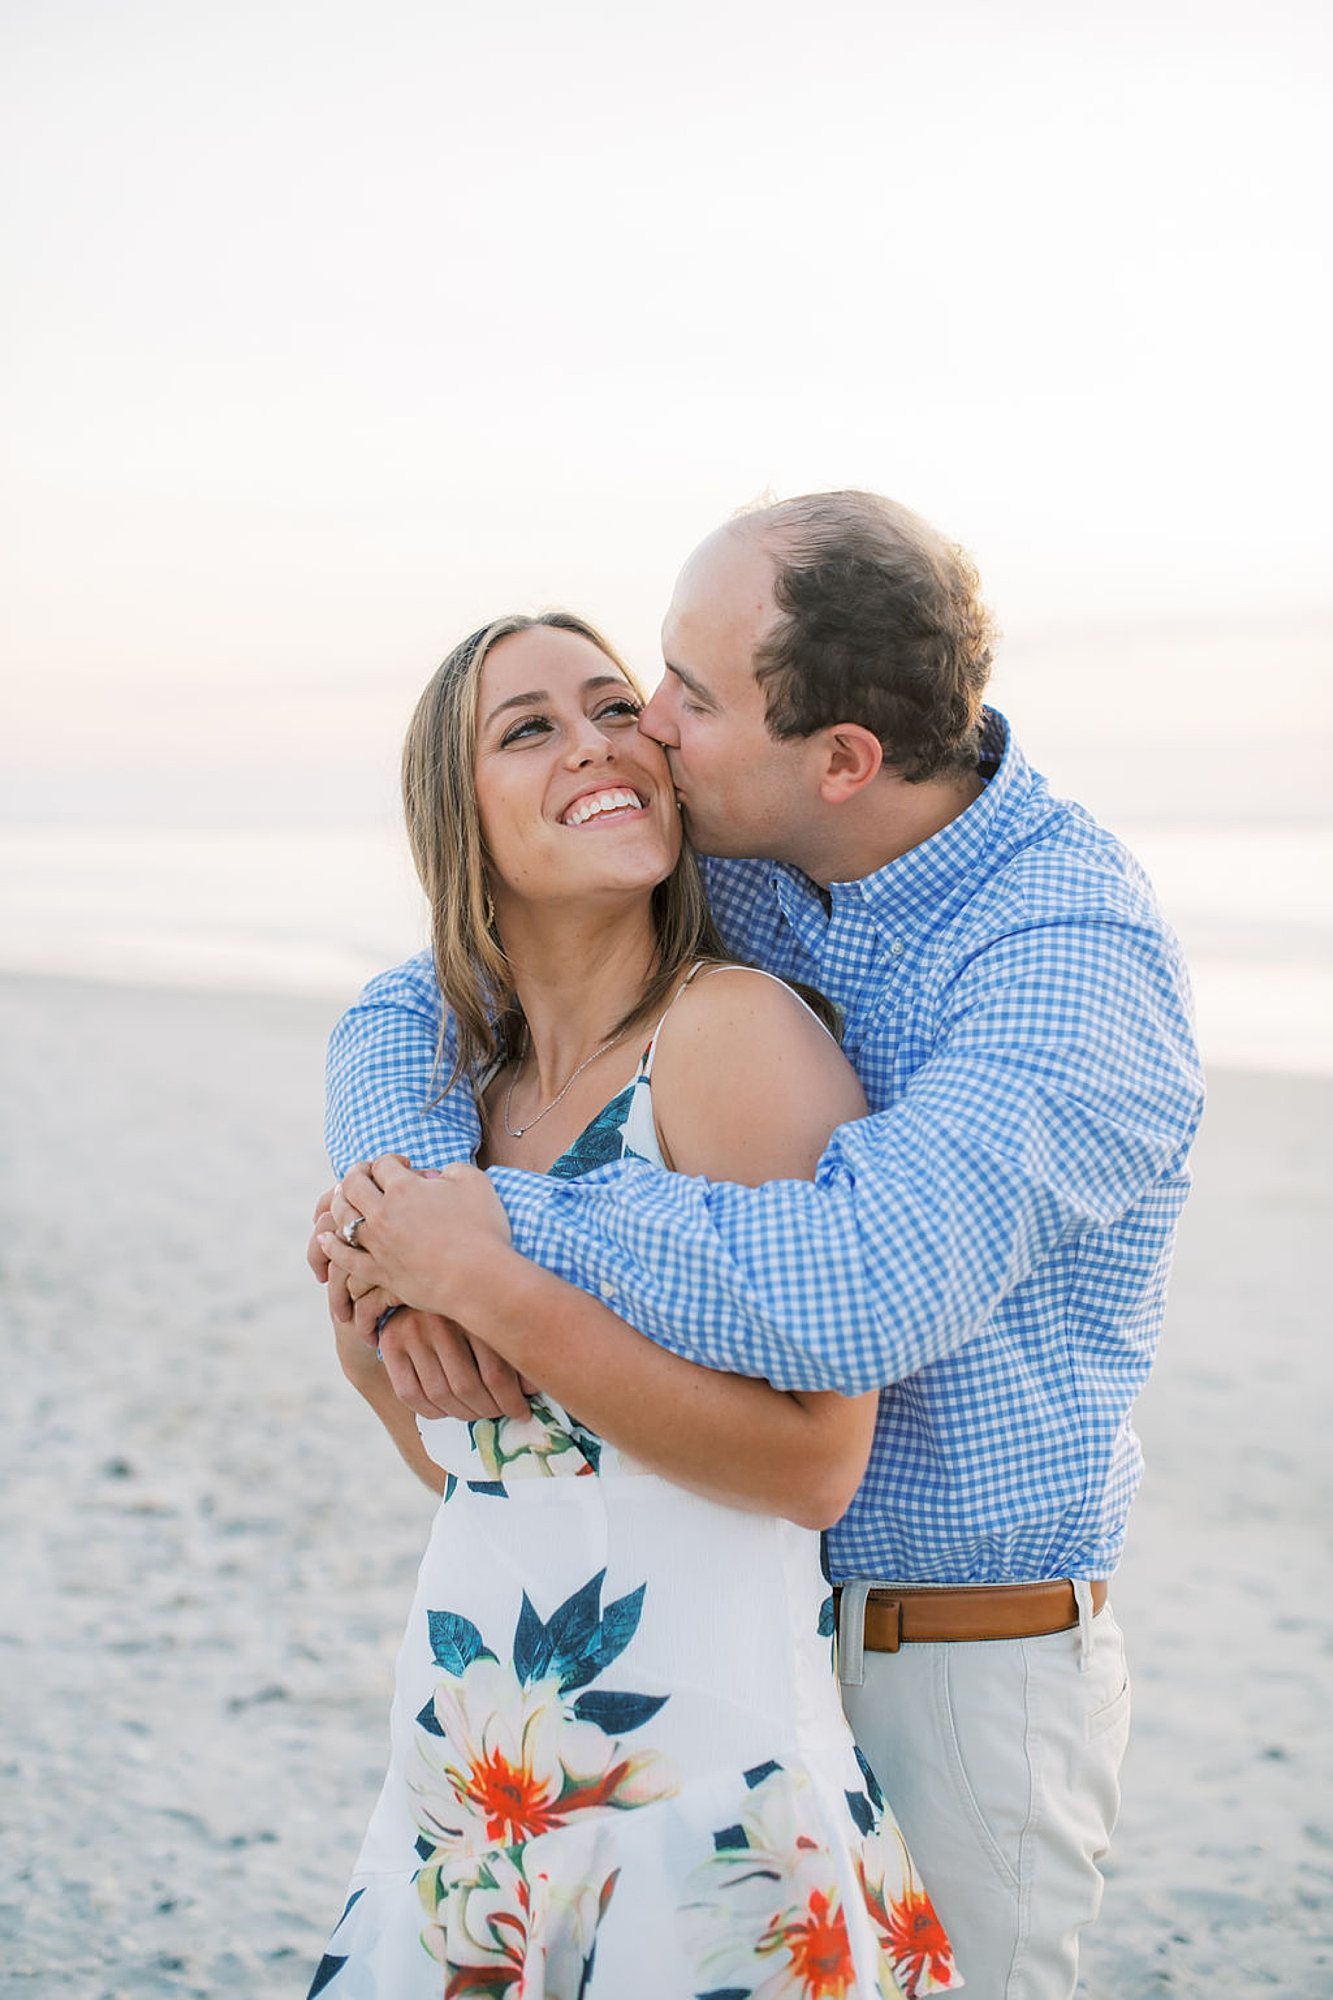 Organic and Romantic Engagement Photography in Ocean City NJ by Magdalena Studios 0007